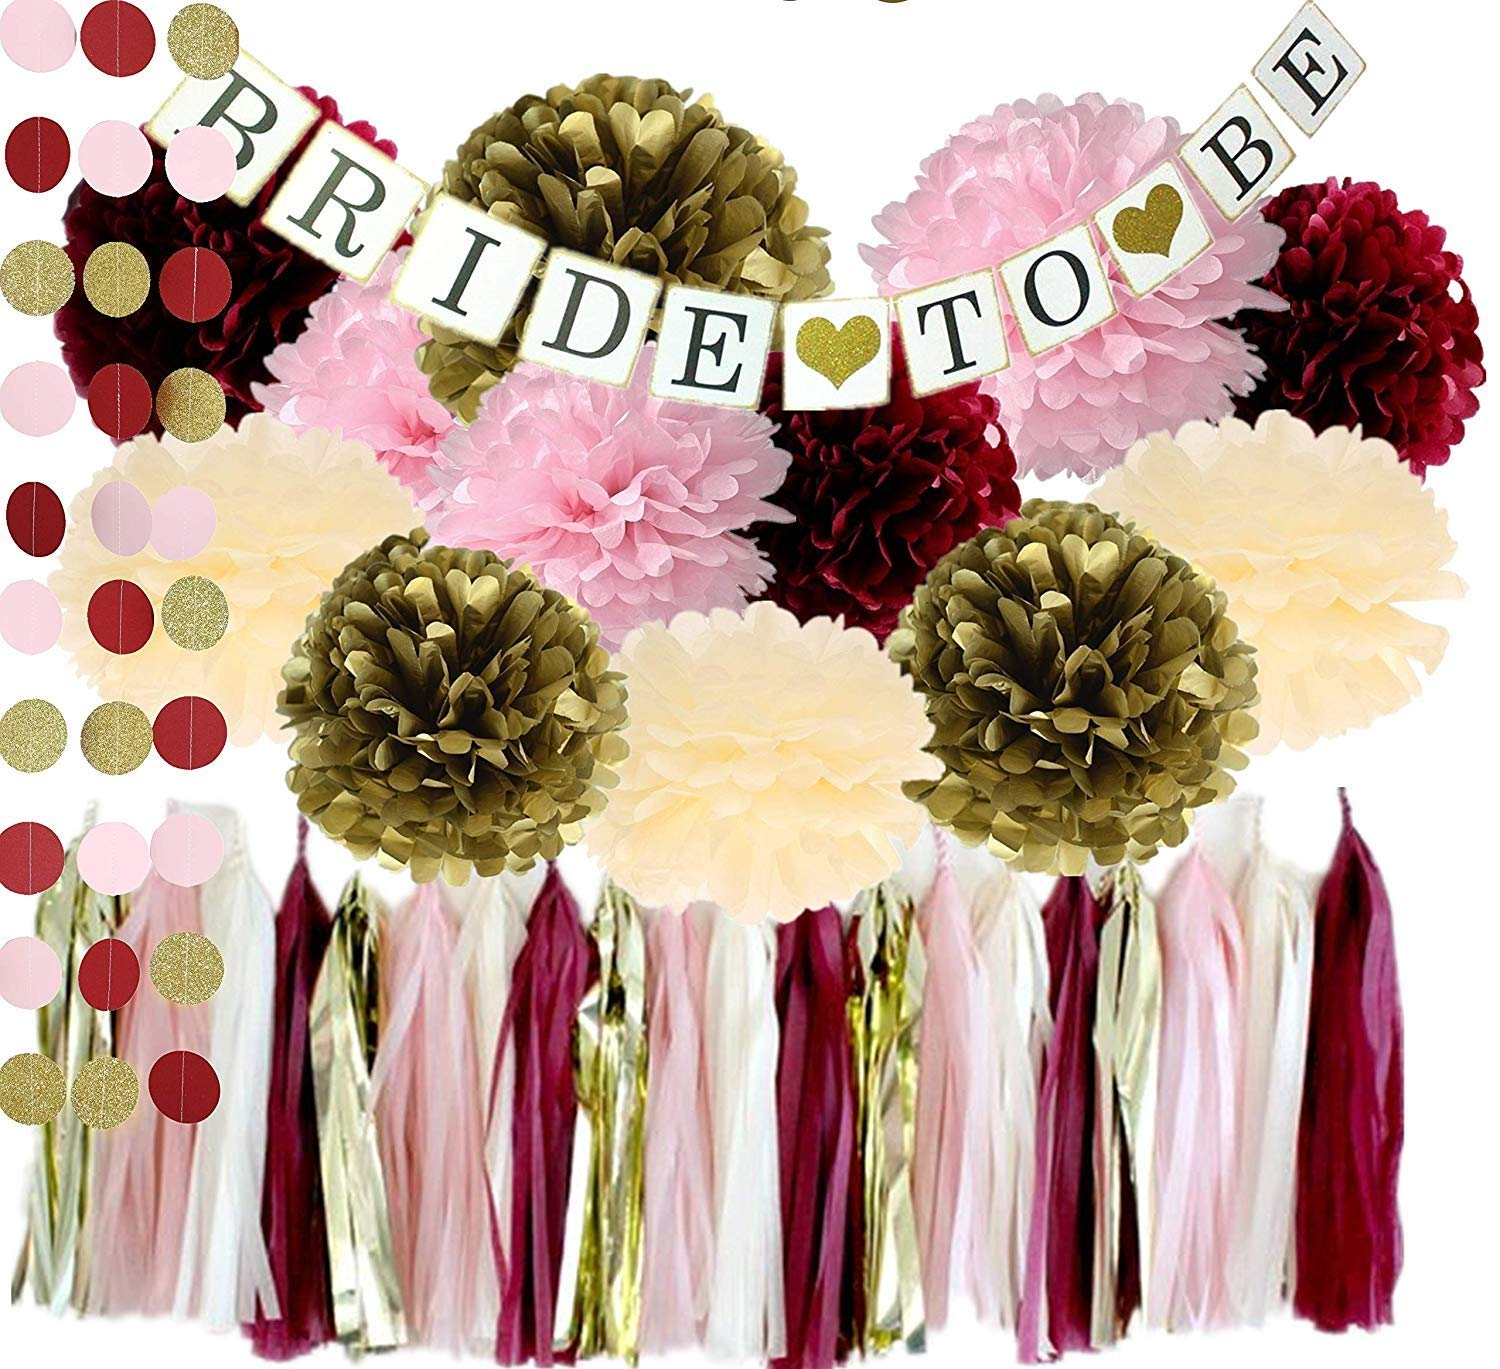 Bachelorette Party Decorations Kit Burgundy Pink Glitter Gold Ivory Tissue Pom Poms Tassel Garland Bride to Be Banner Decorations Wedding Bridal Shower Engagement Party Decorations